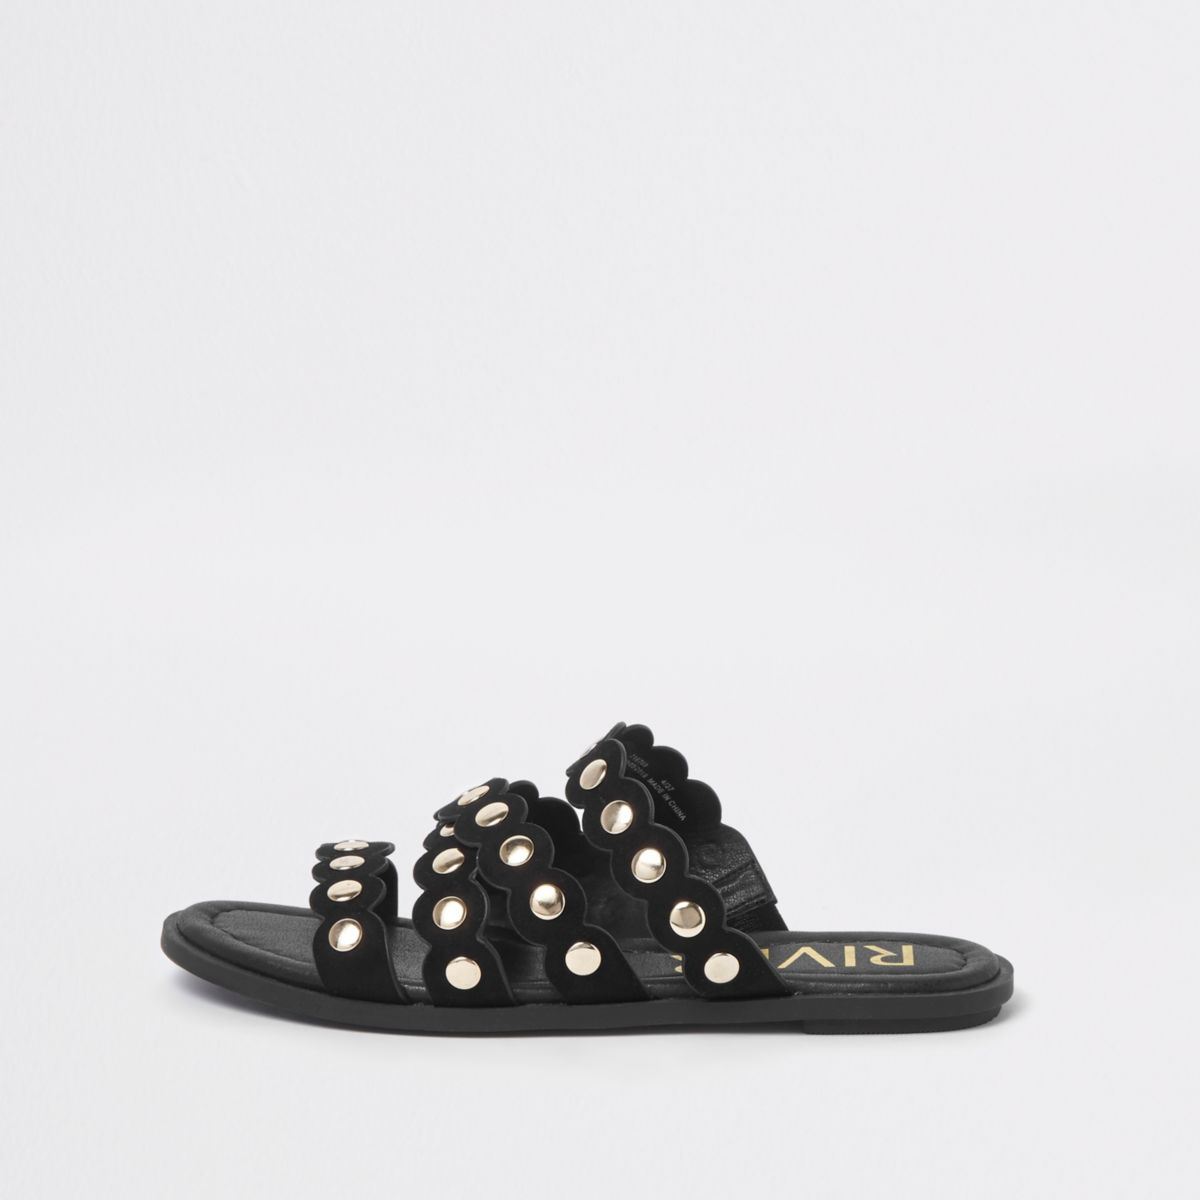 Black scallop studded mule sandals